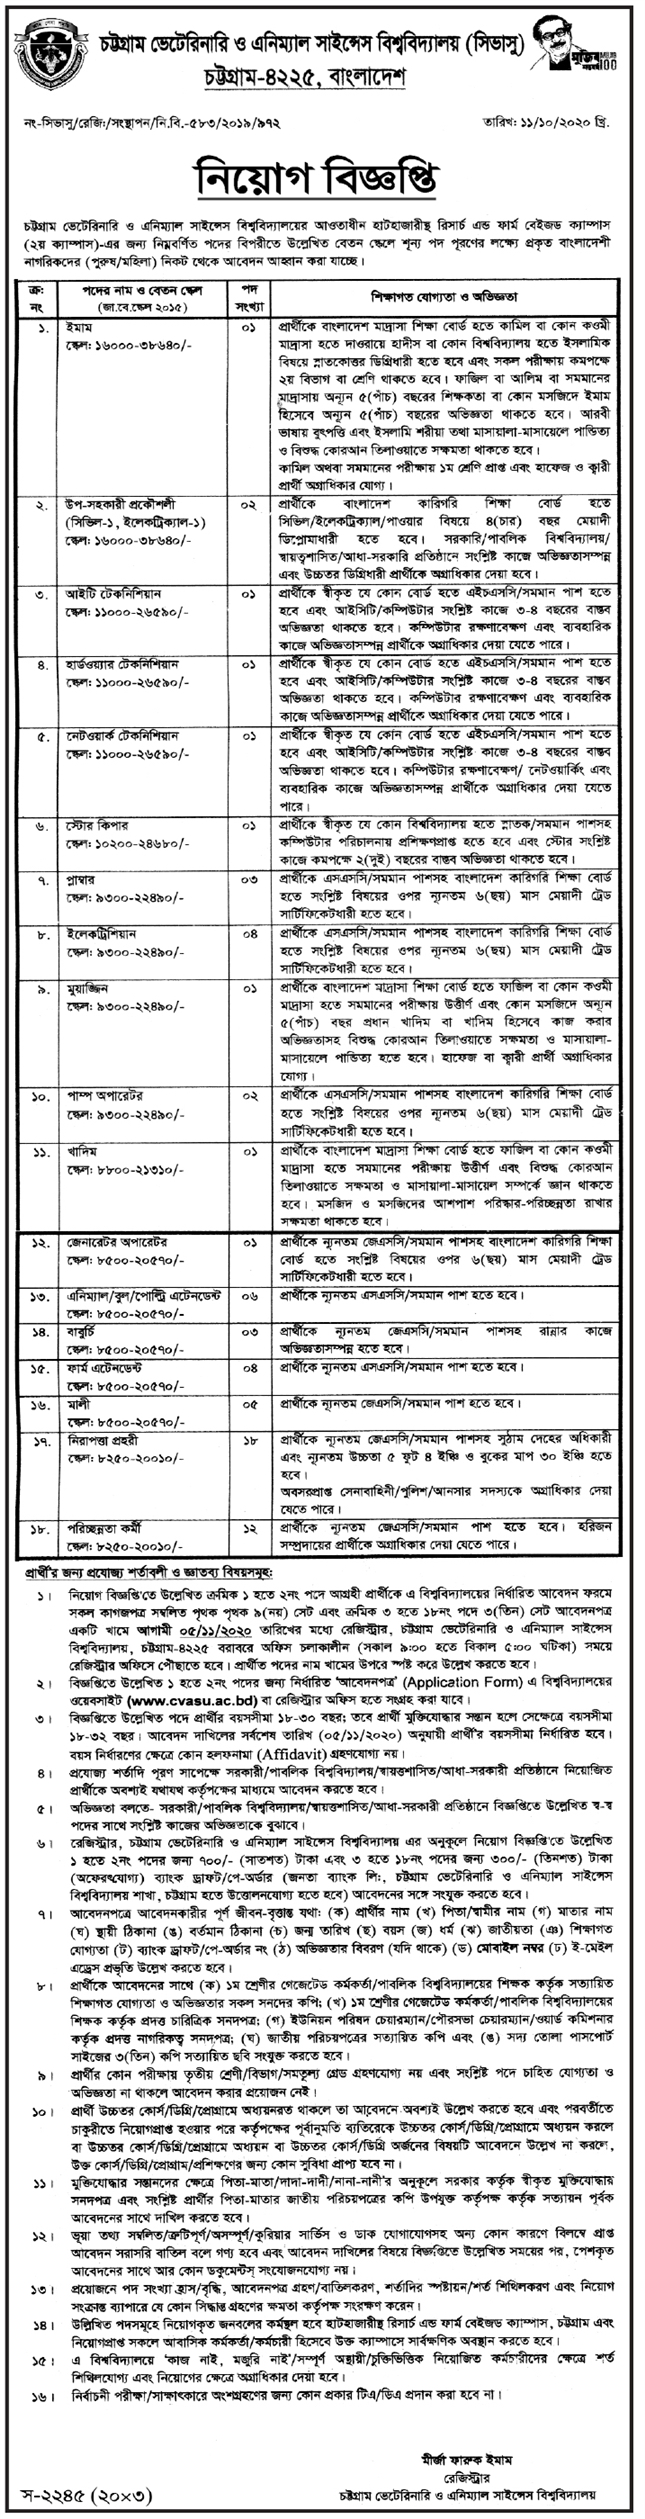 Chattogram Veterinary and Animal Sciences University Job circular 2020